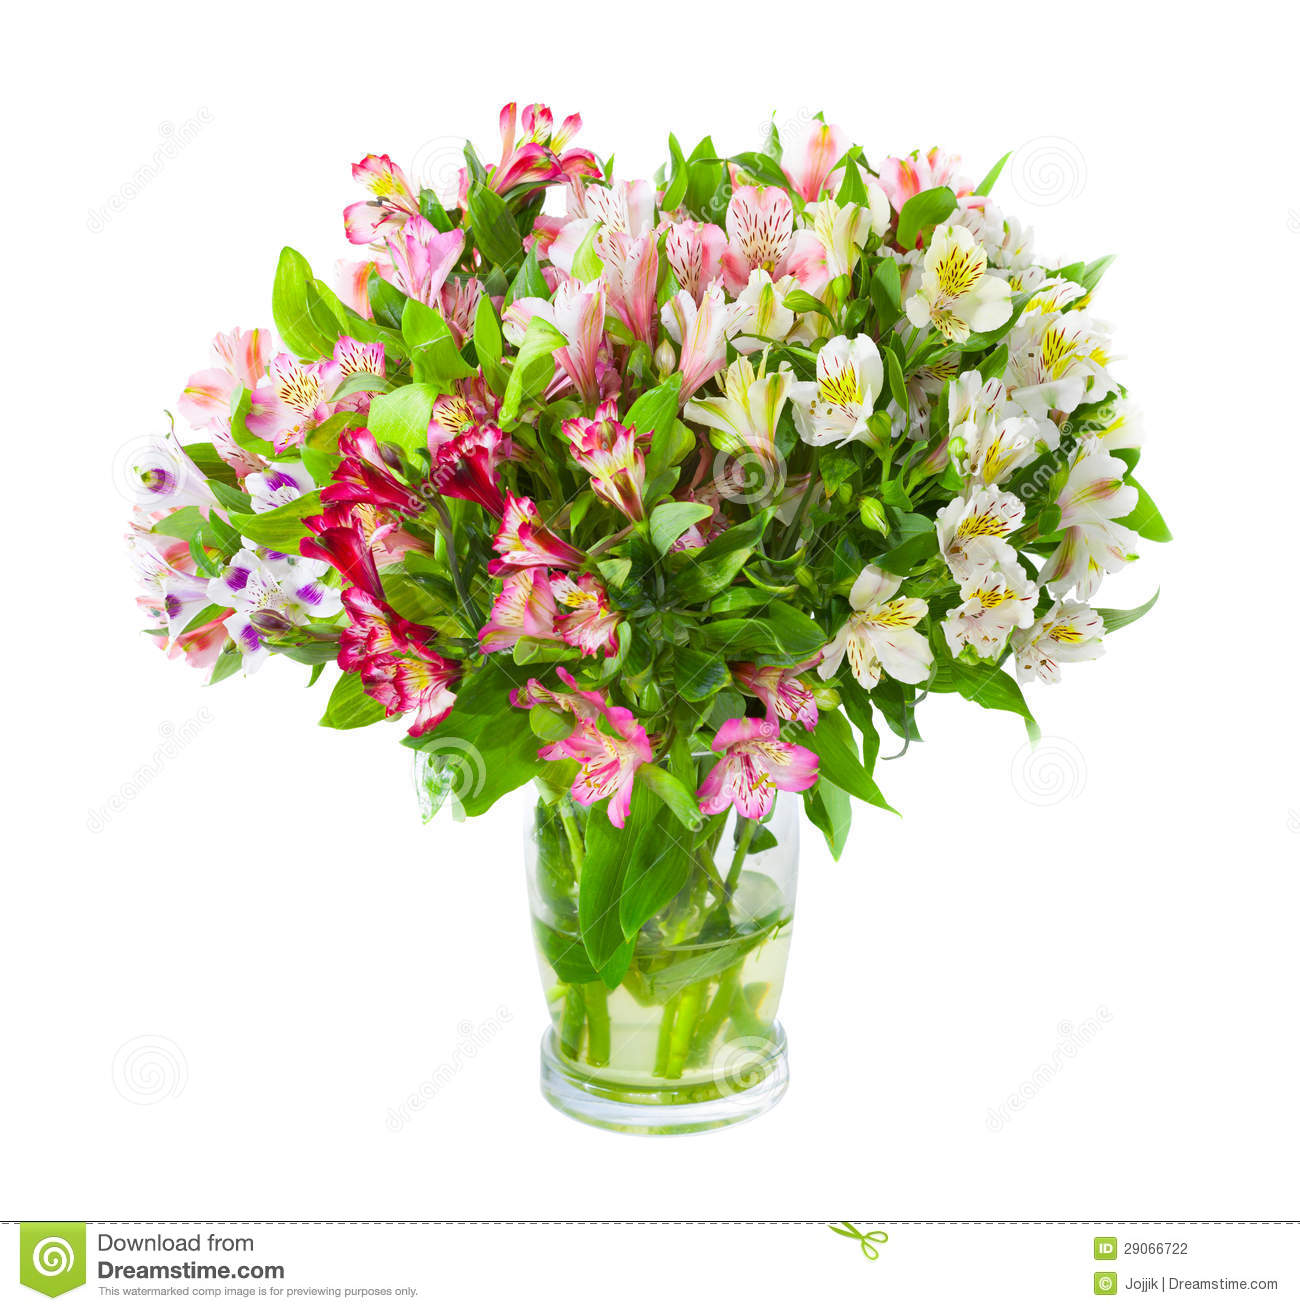 Bouquet of alstroemeria flowers in glass vase stock photo image of download bouquet of alstroemeria flowers in glass vase stock photo image of bouquet gift izmirmasajfo